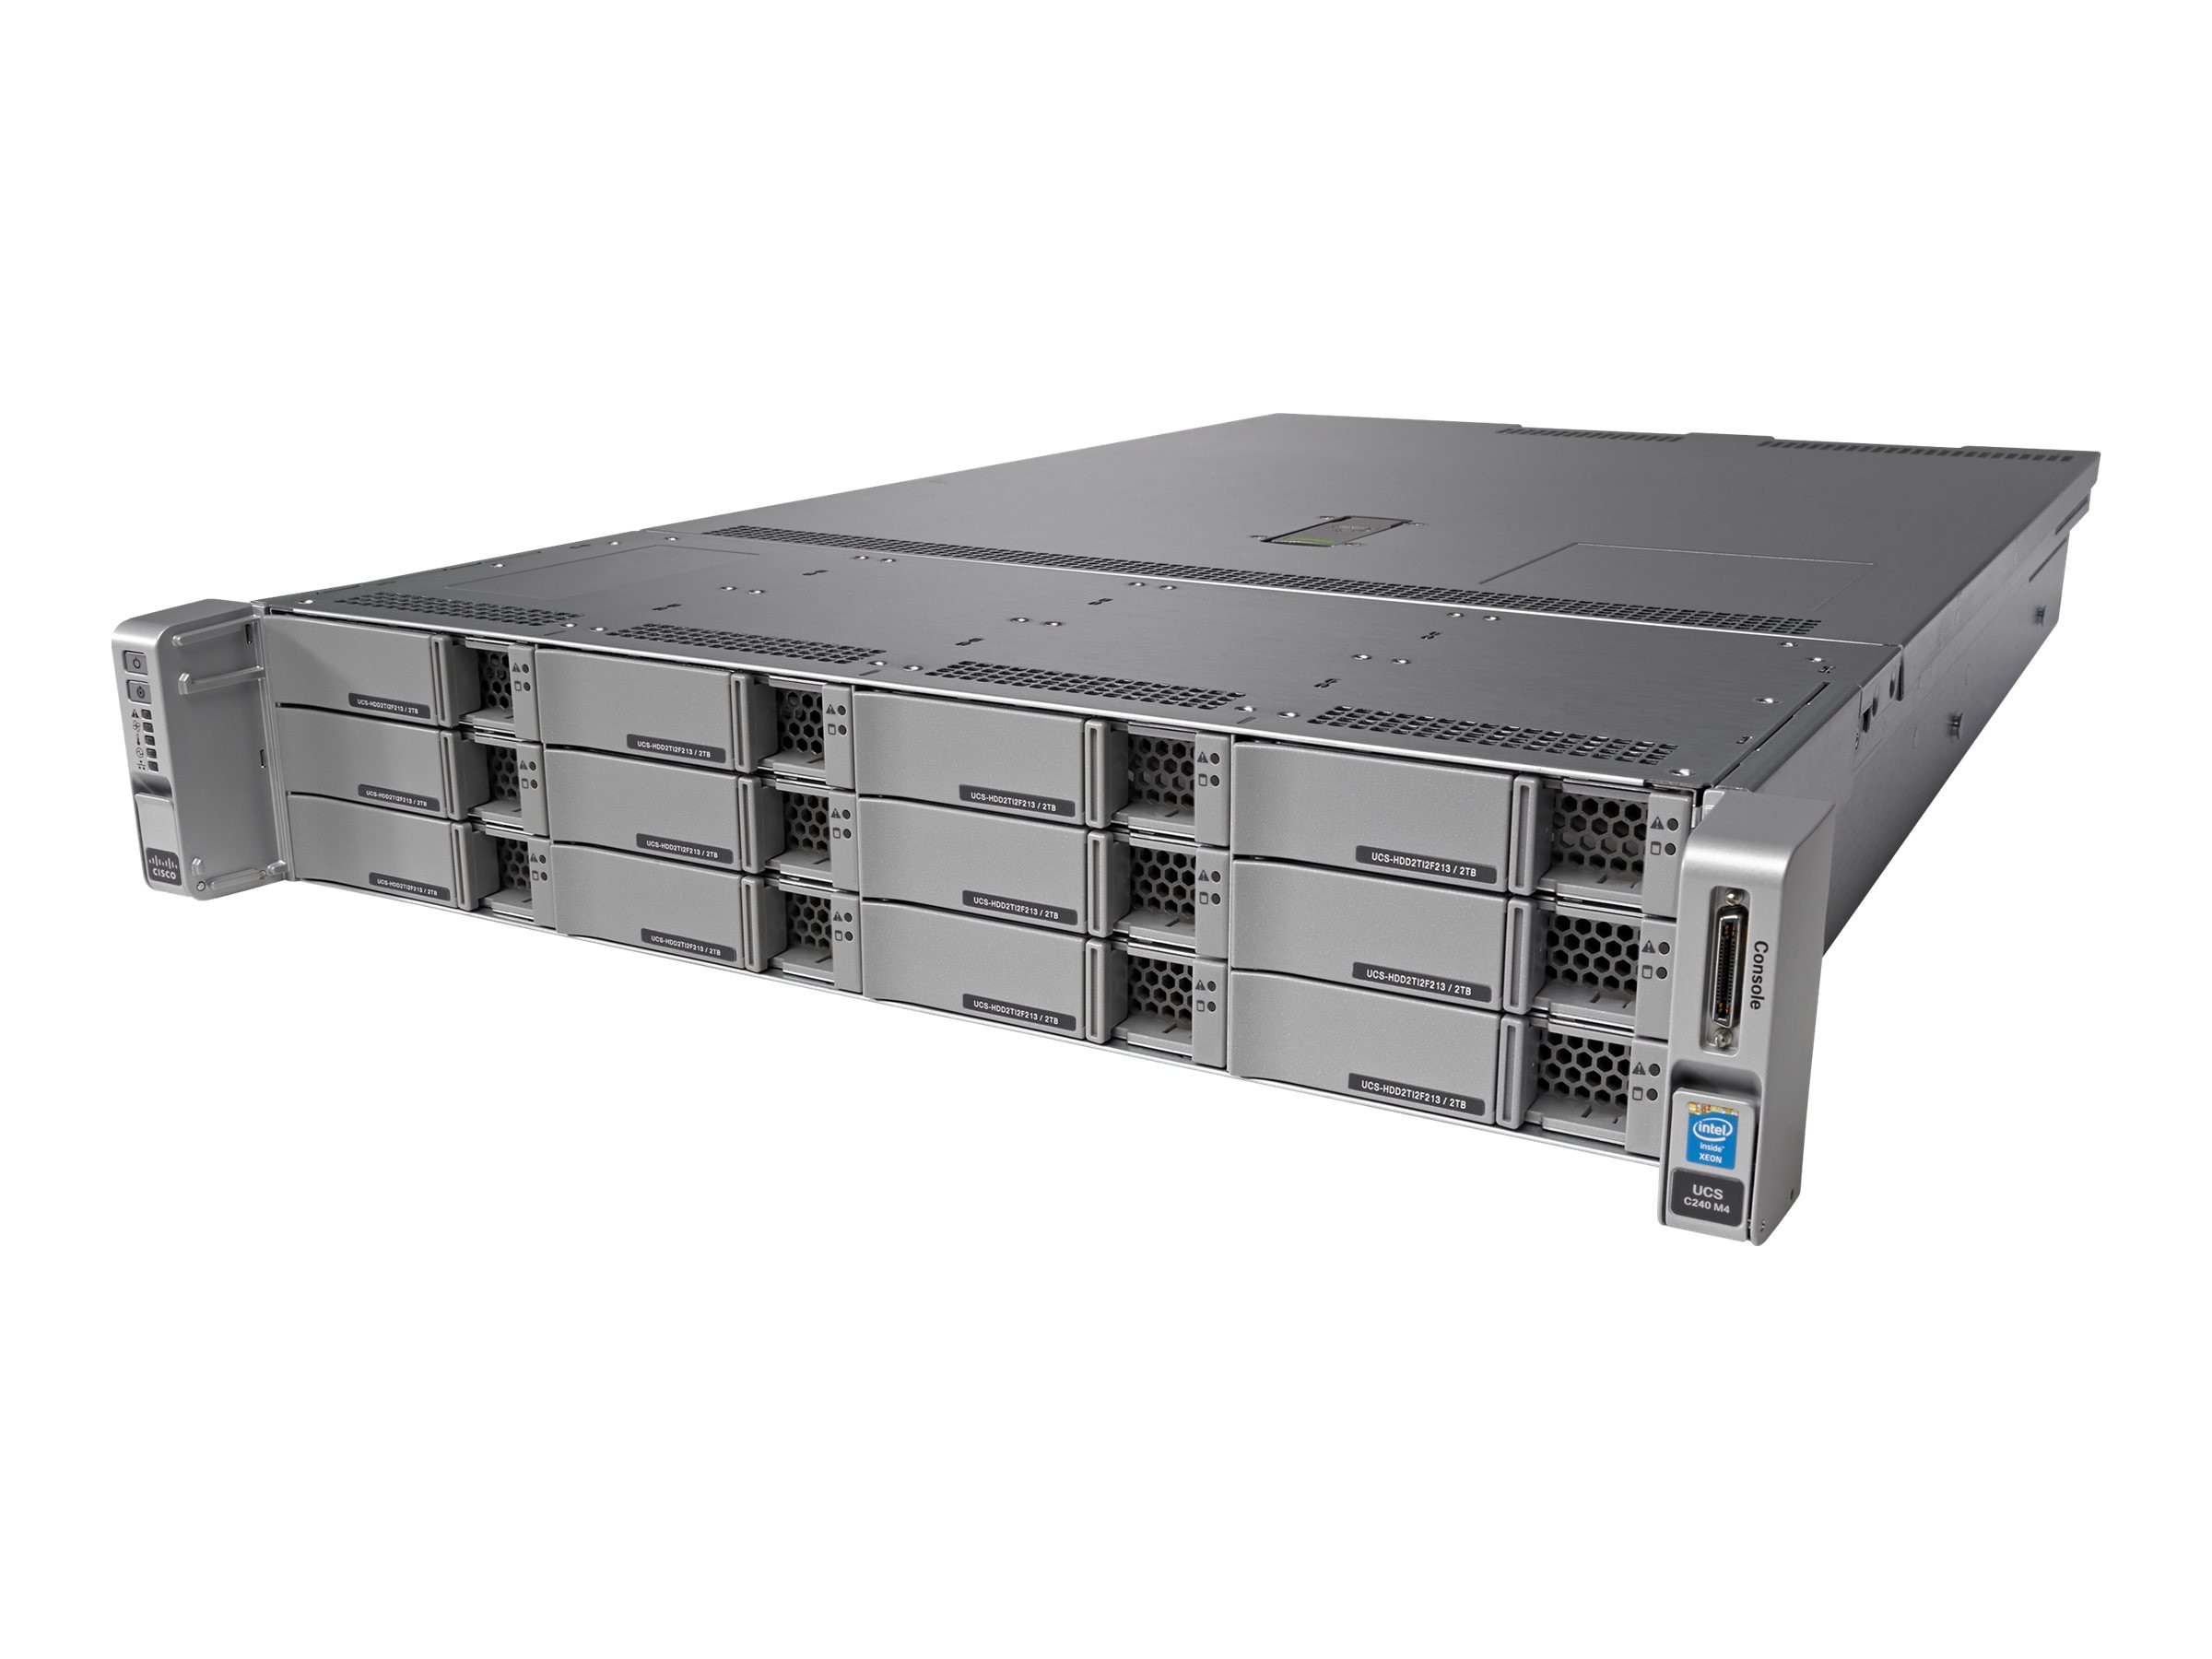 Cisco Not Sold Standalone C240 M4L Standard 2 (2x)Xeon E5-2620 v3 128GB VIC1227